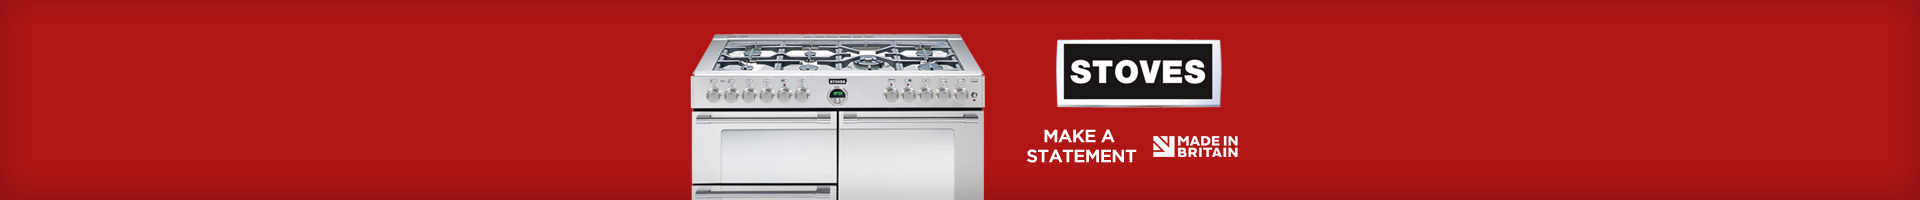 stoves appliances